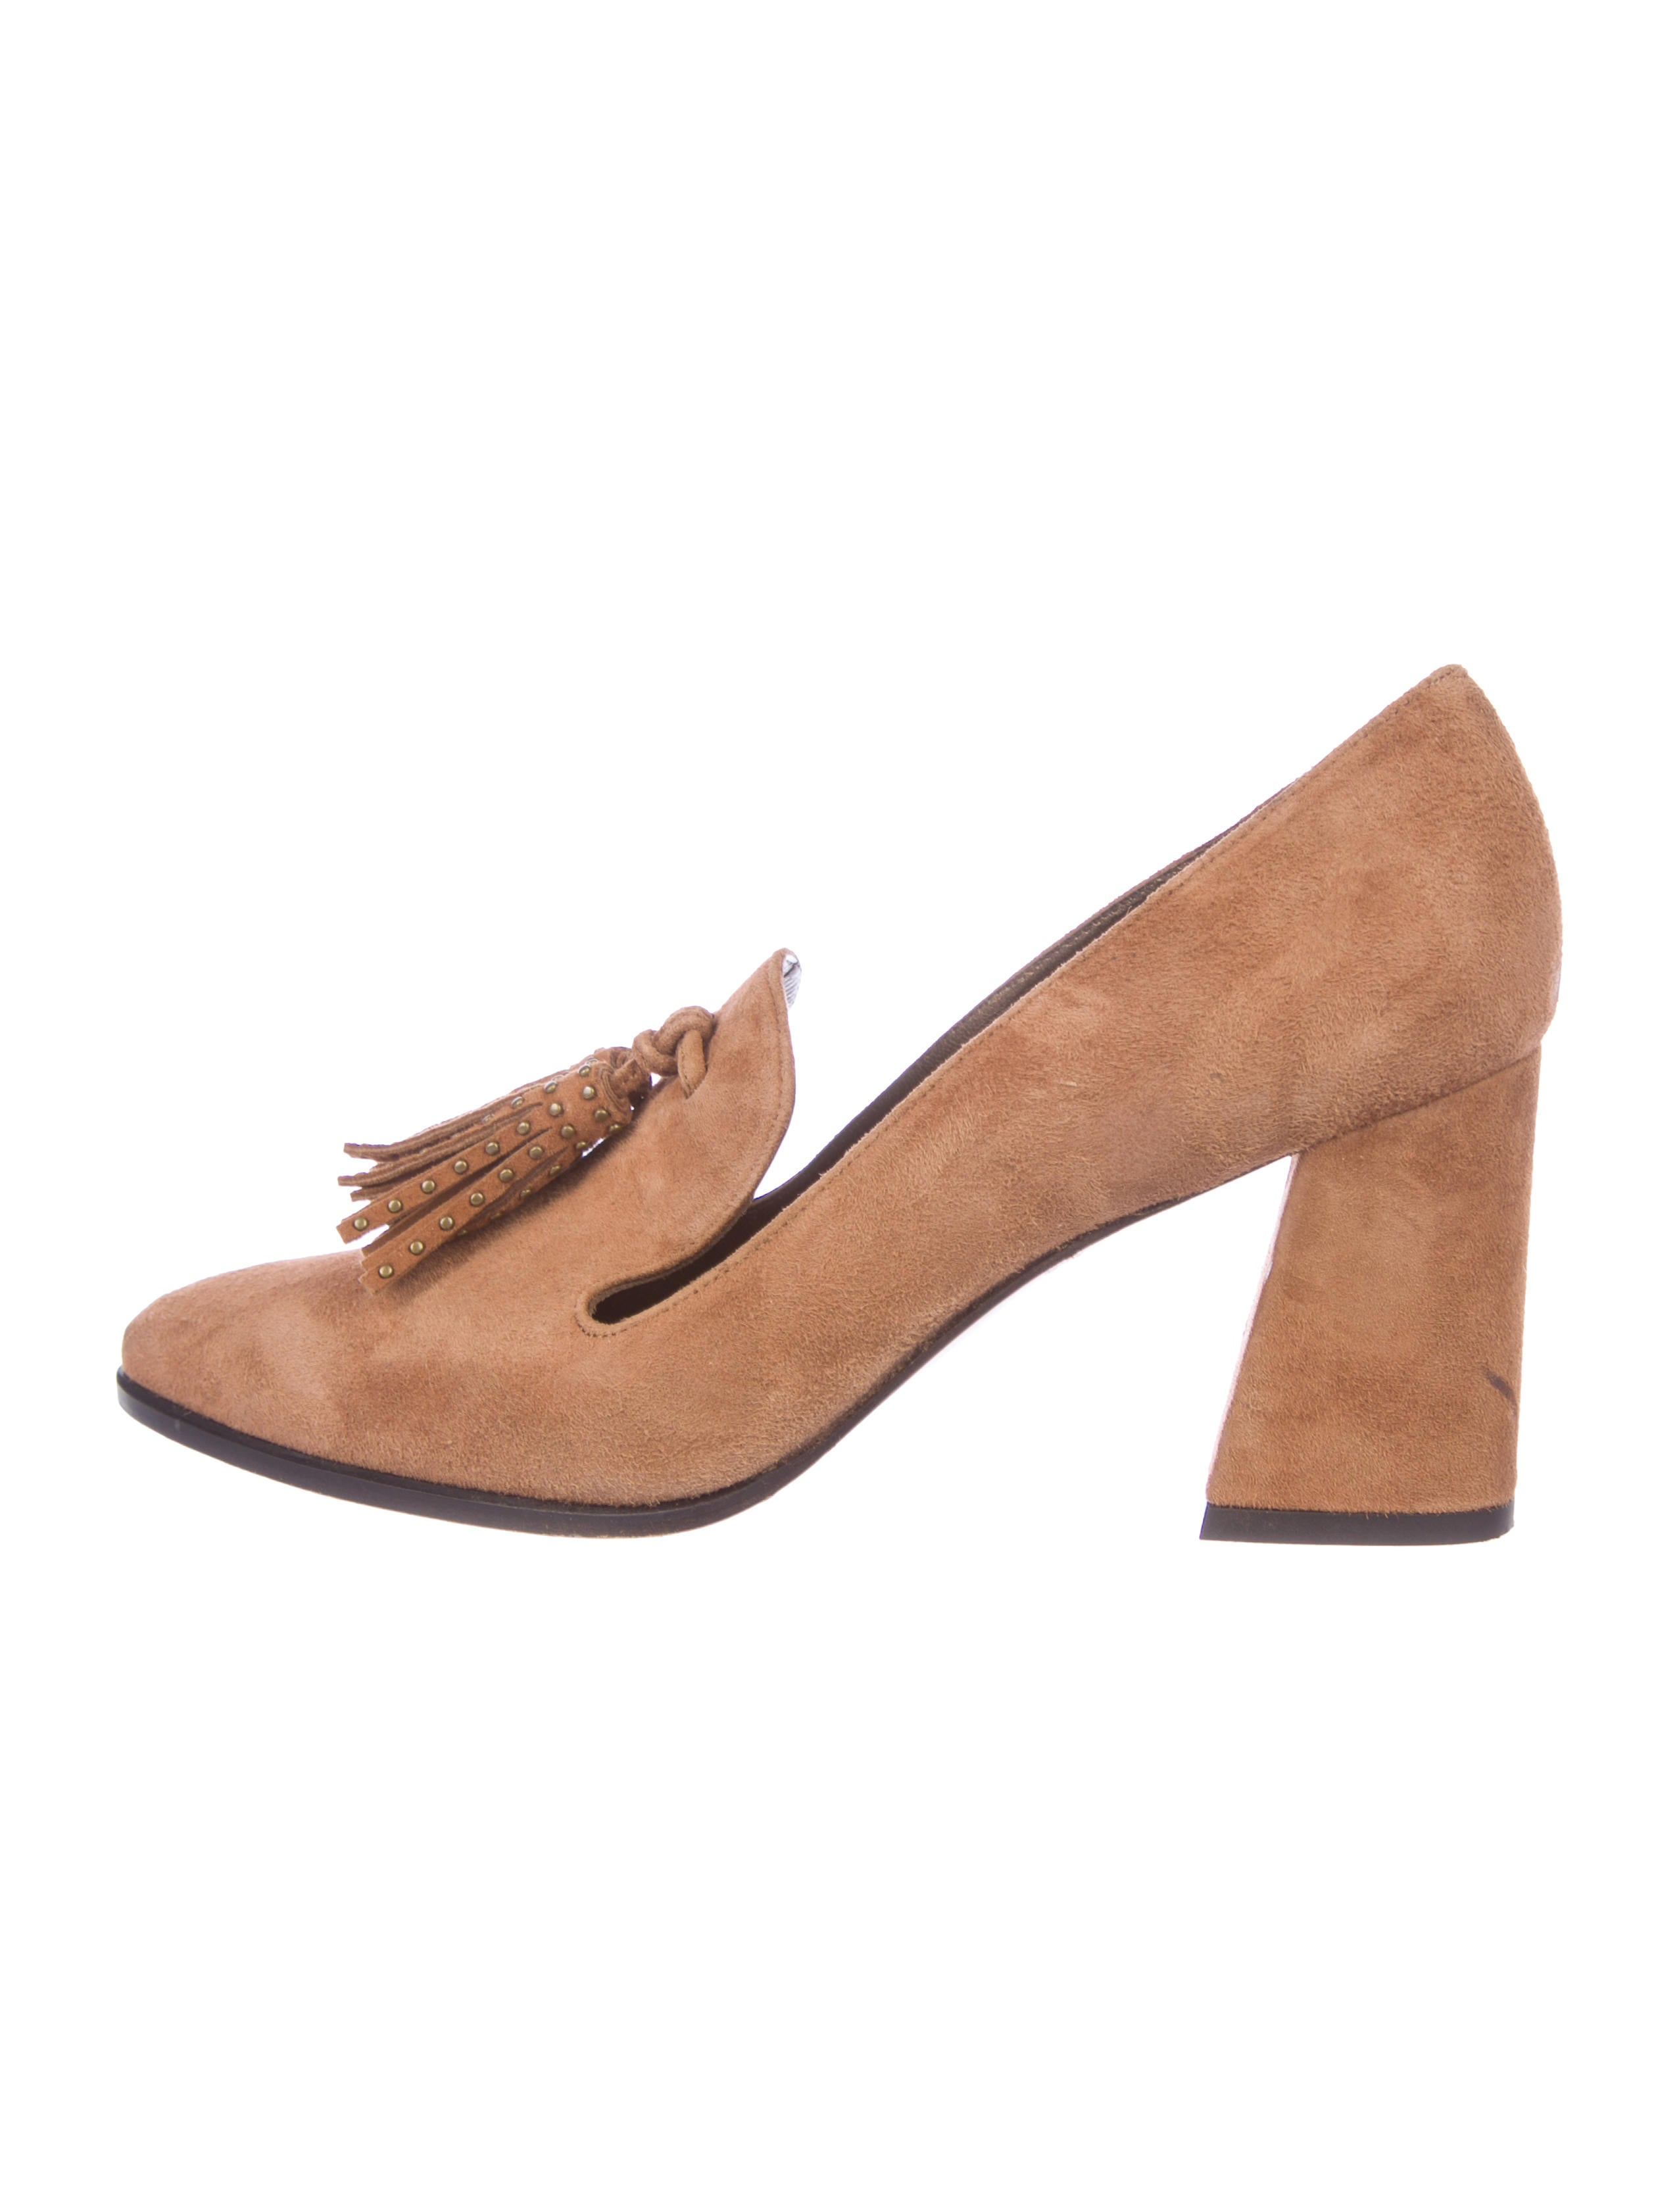 outlet 2015 new Stuart Weitzman Tassel-Embellished Loafer Pumps buy cheap store clearance latest collections QaNVVls8C